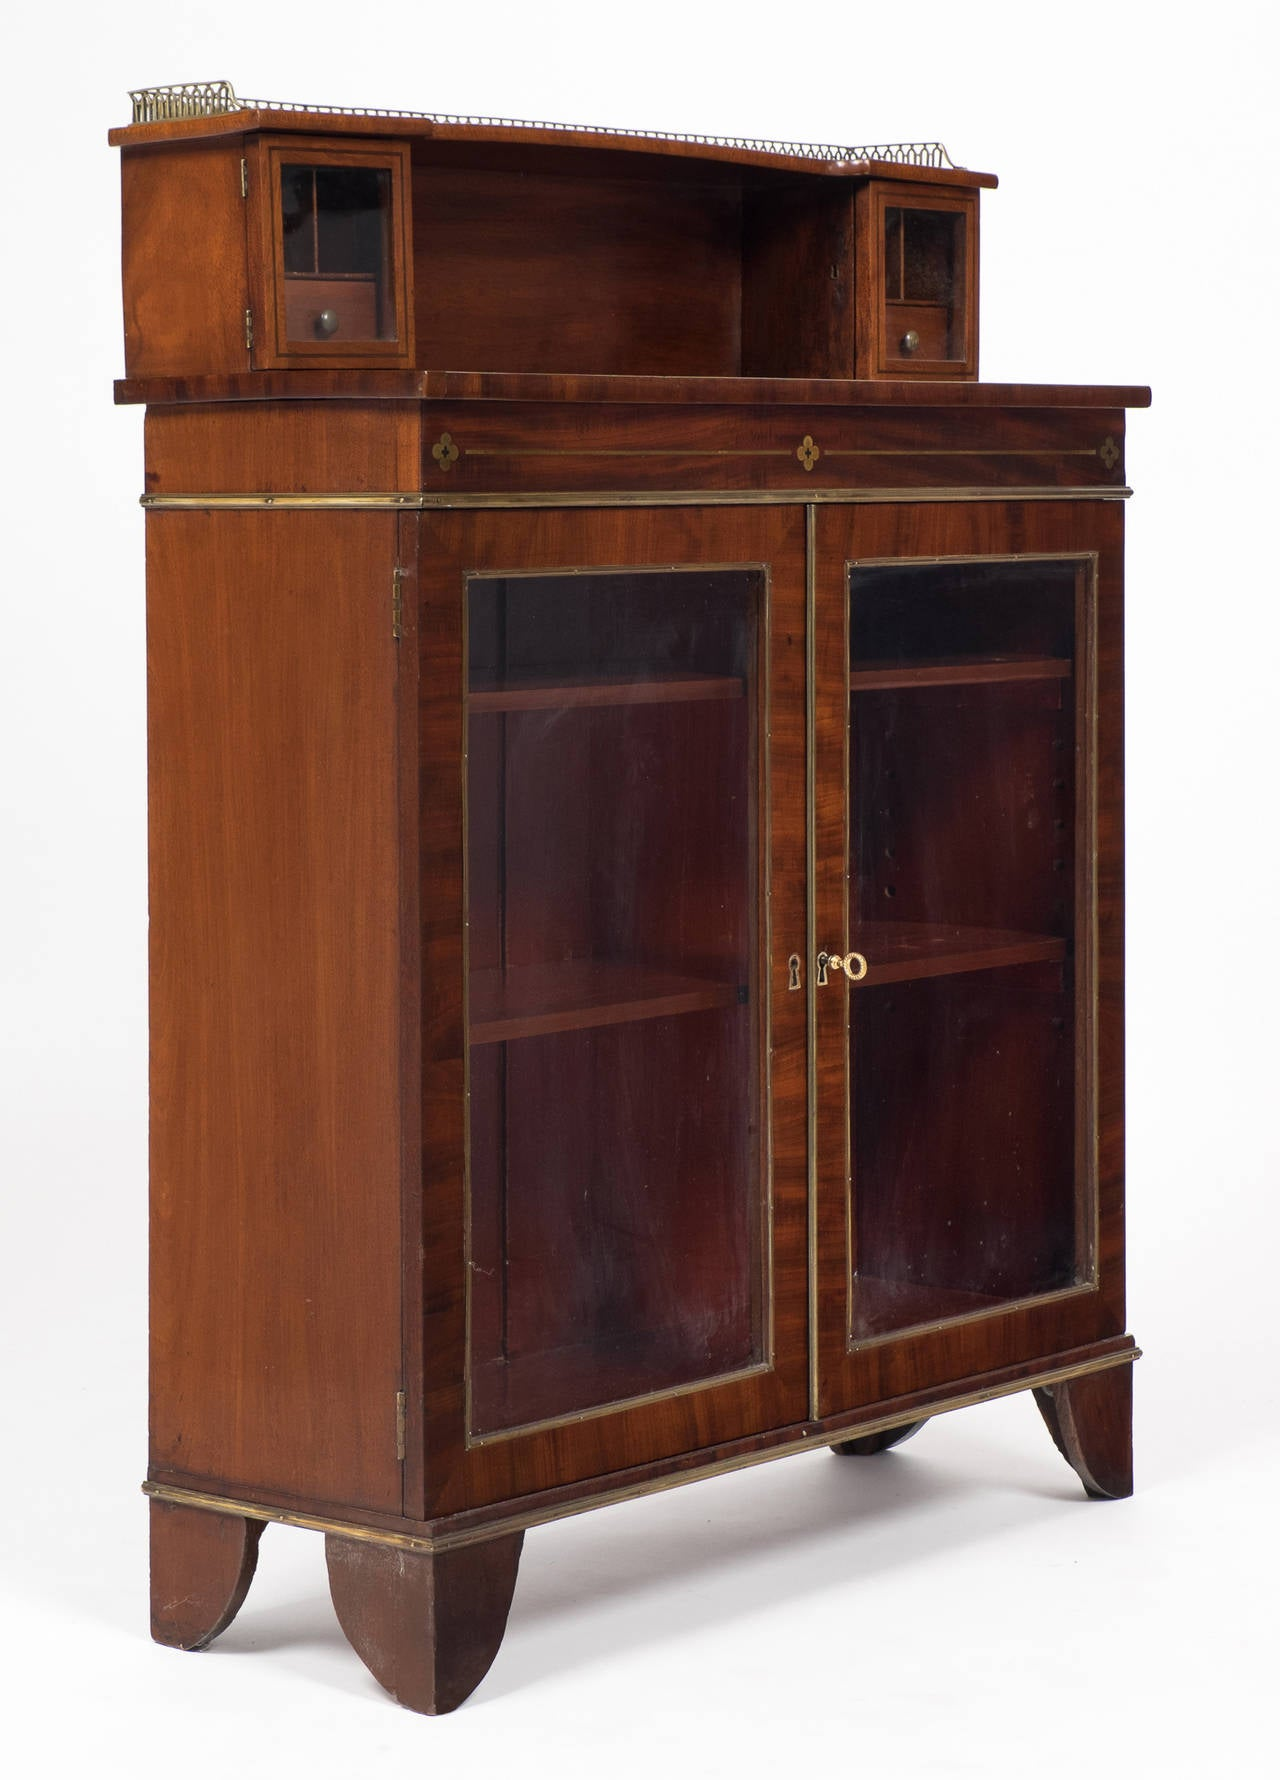 French Restoration Period Vitrine At 1stdibs